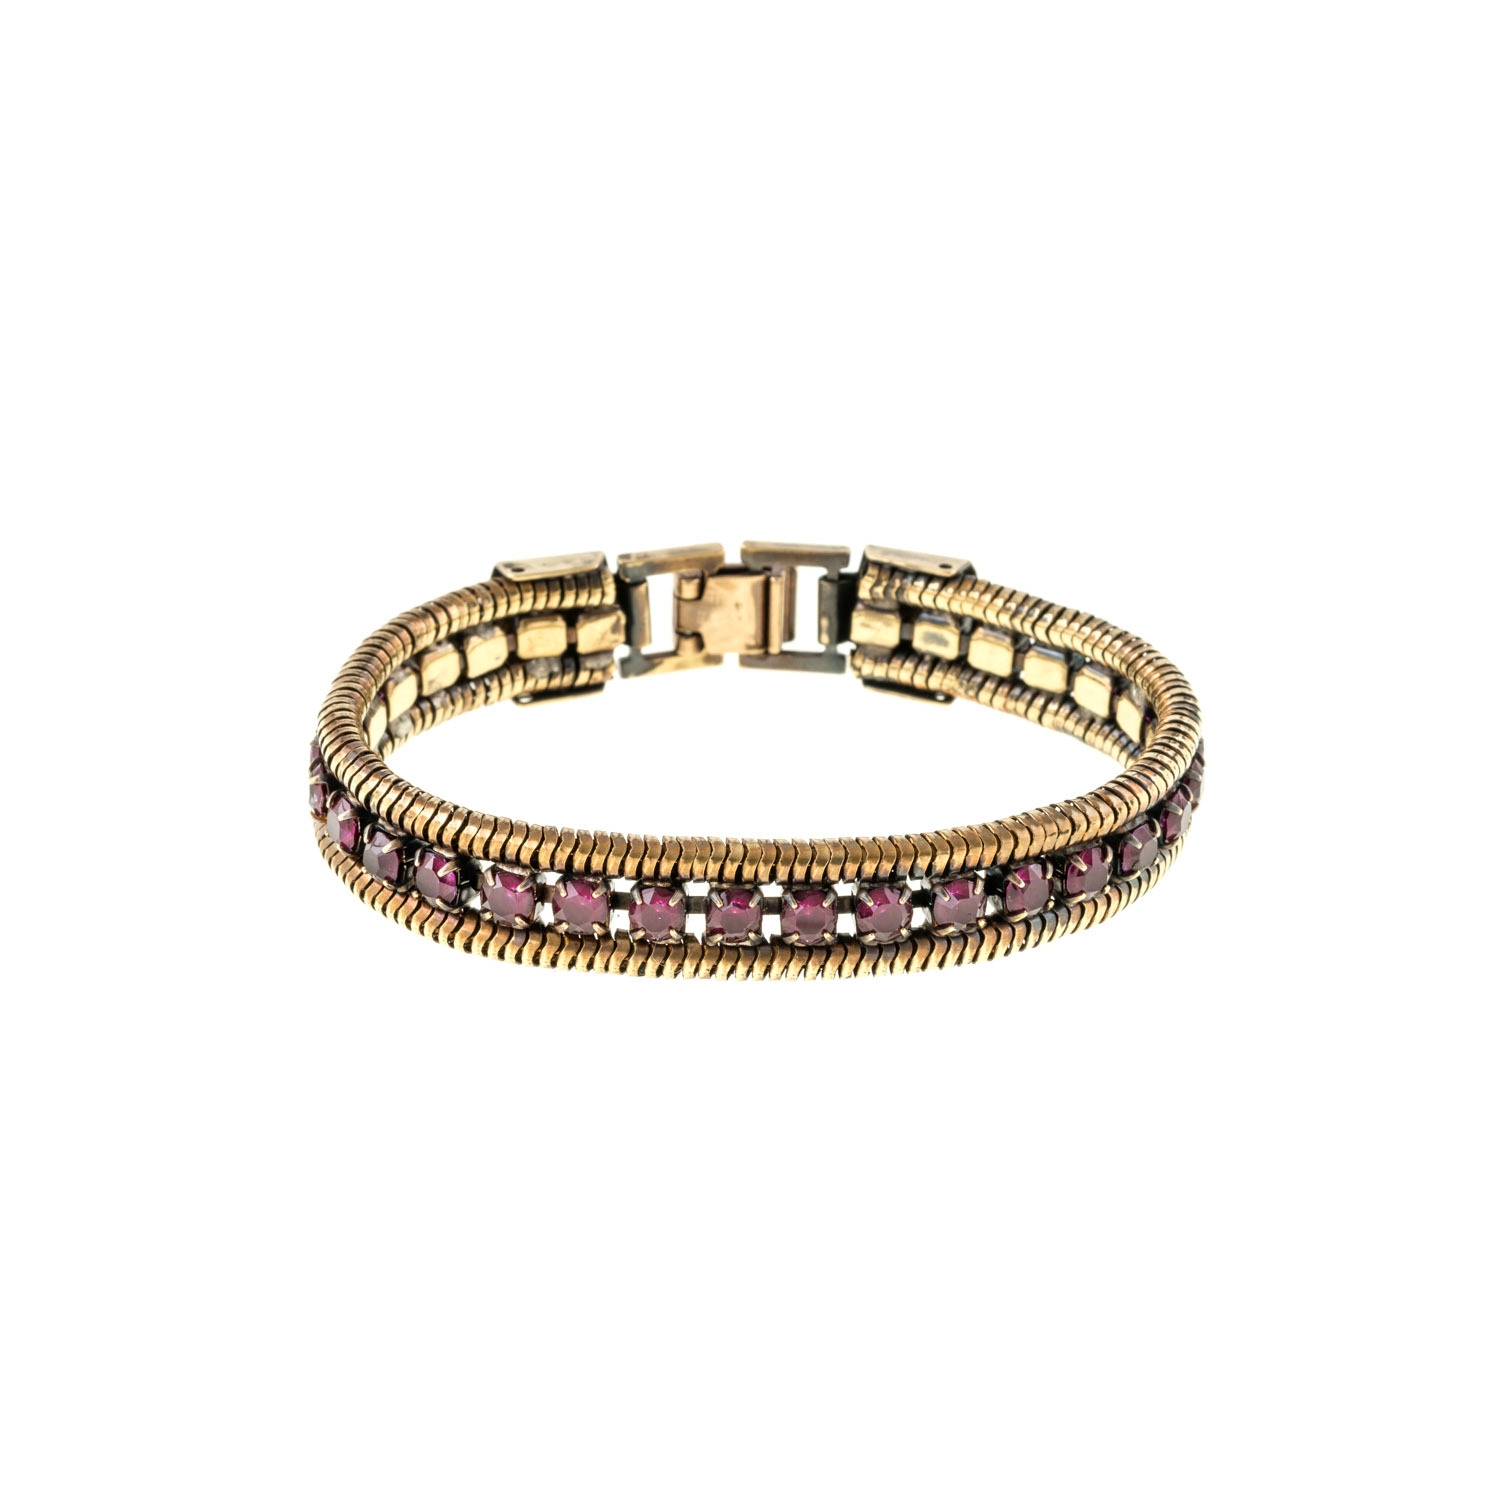 HALO & CO AMETHYST CRYSTAL AND ROPE CHAIN CUFF IN DARK ANTIQUE GOLD COLOUR